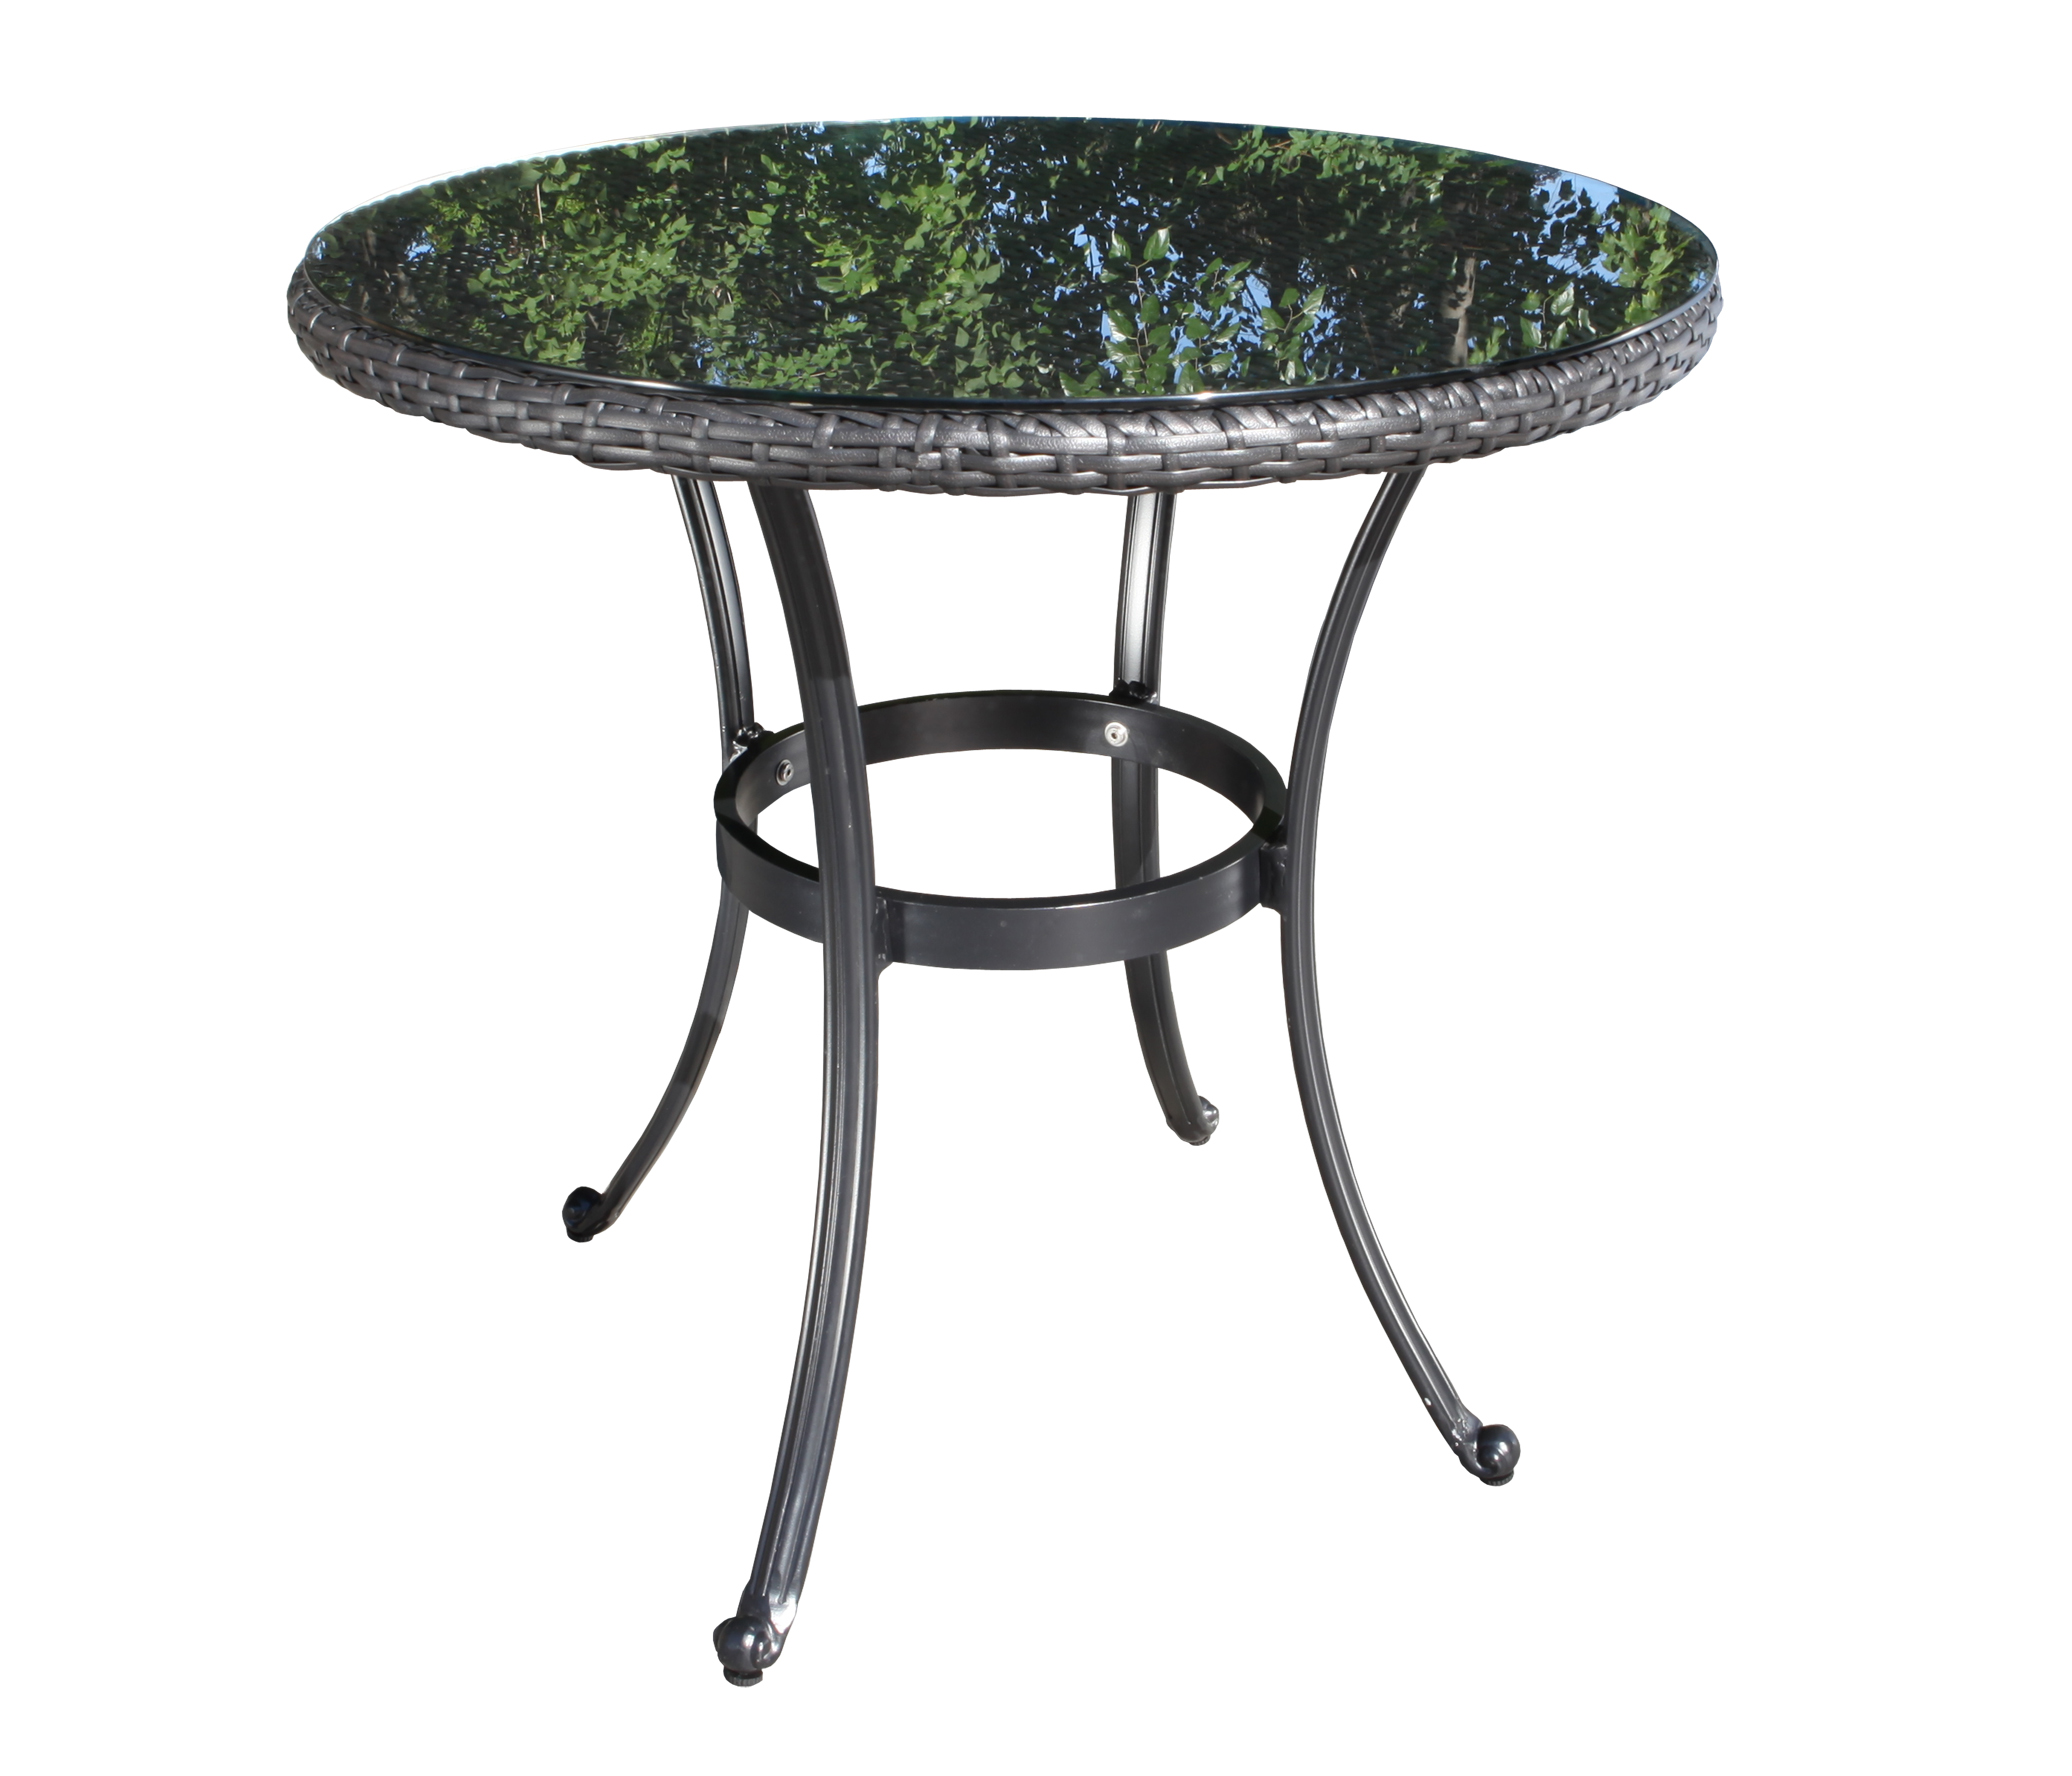 Solano Round Wicker Dining Table Patio Furniture At Sun